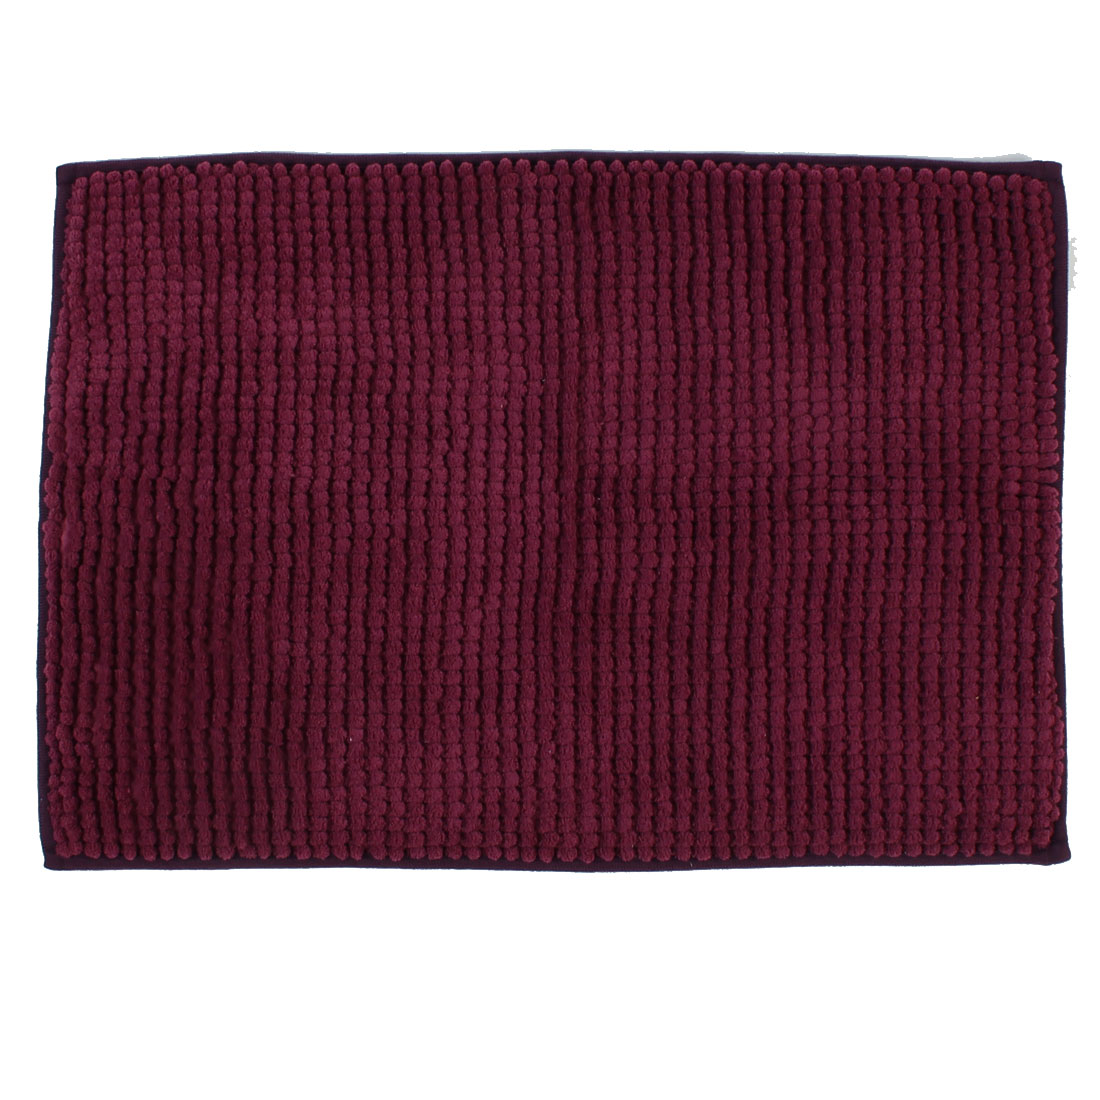 Hotel Home Bathroom Soft Durable Non Slip Absorbent Bath Mat Burgundy 24 x 16 Inch